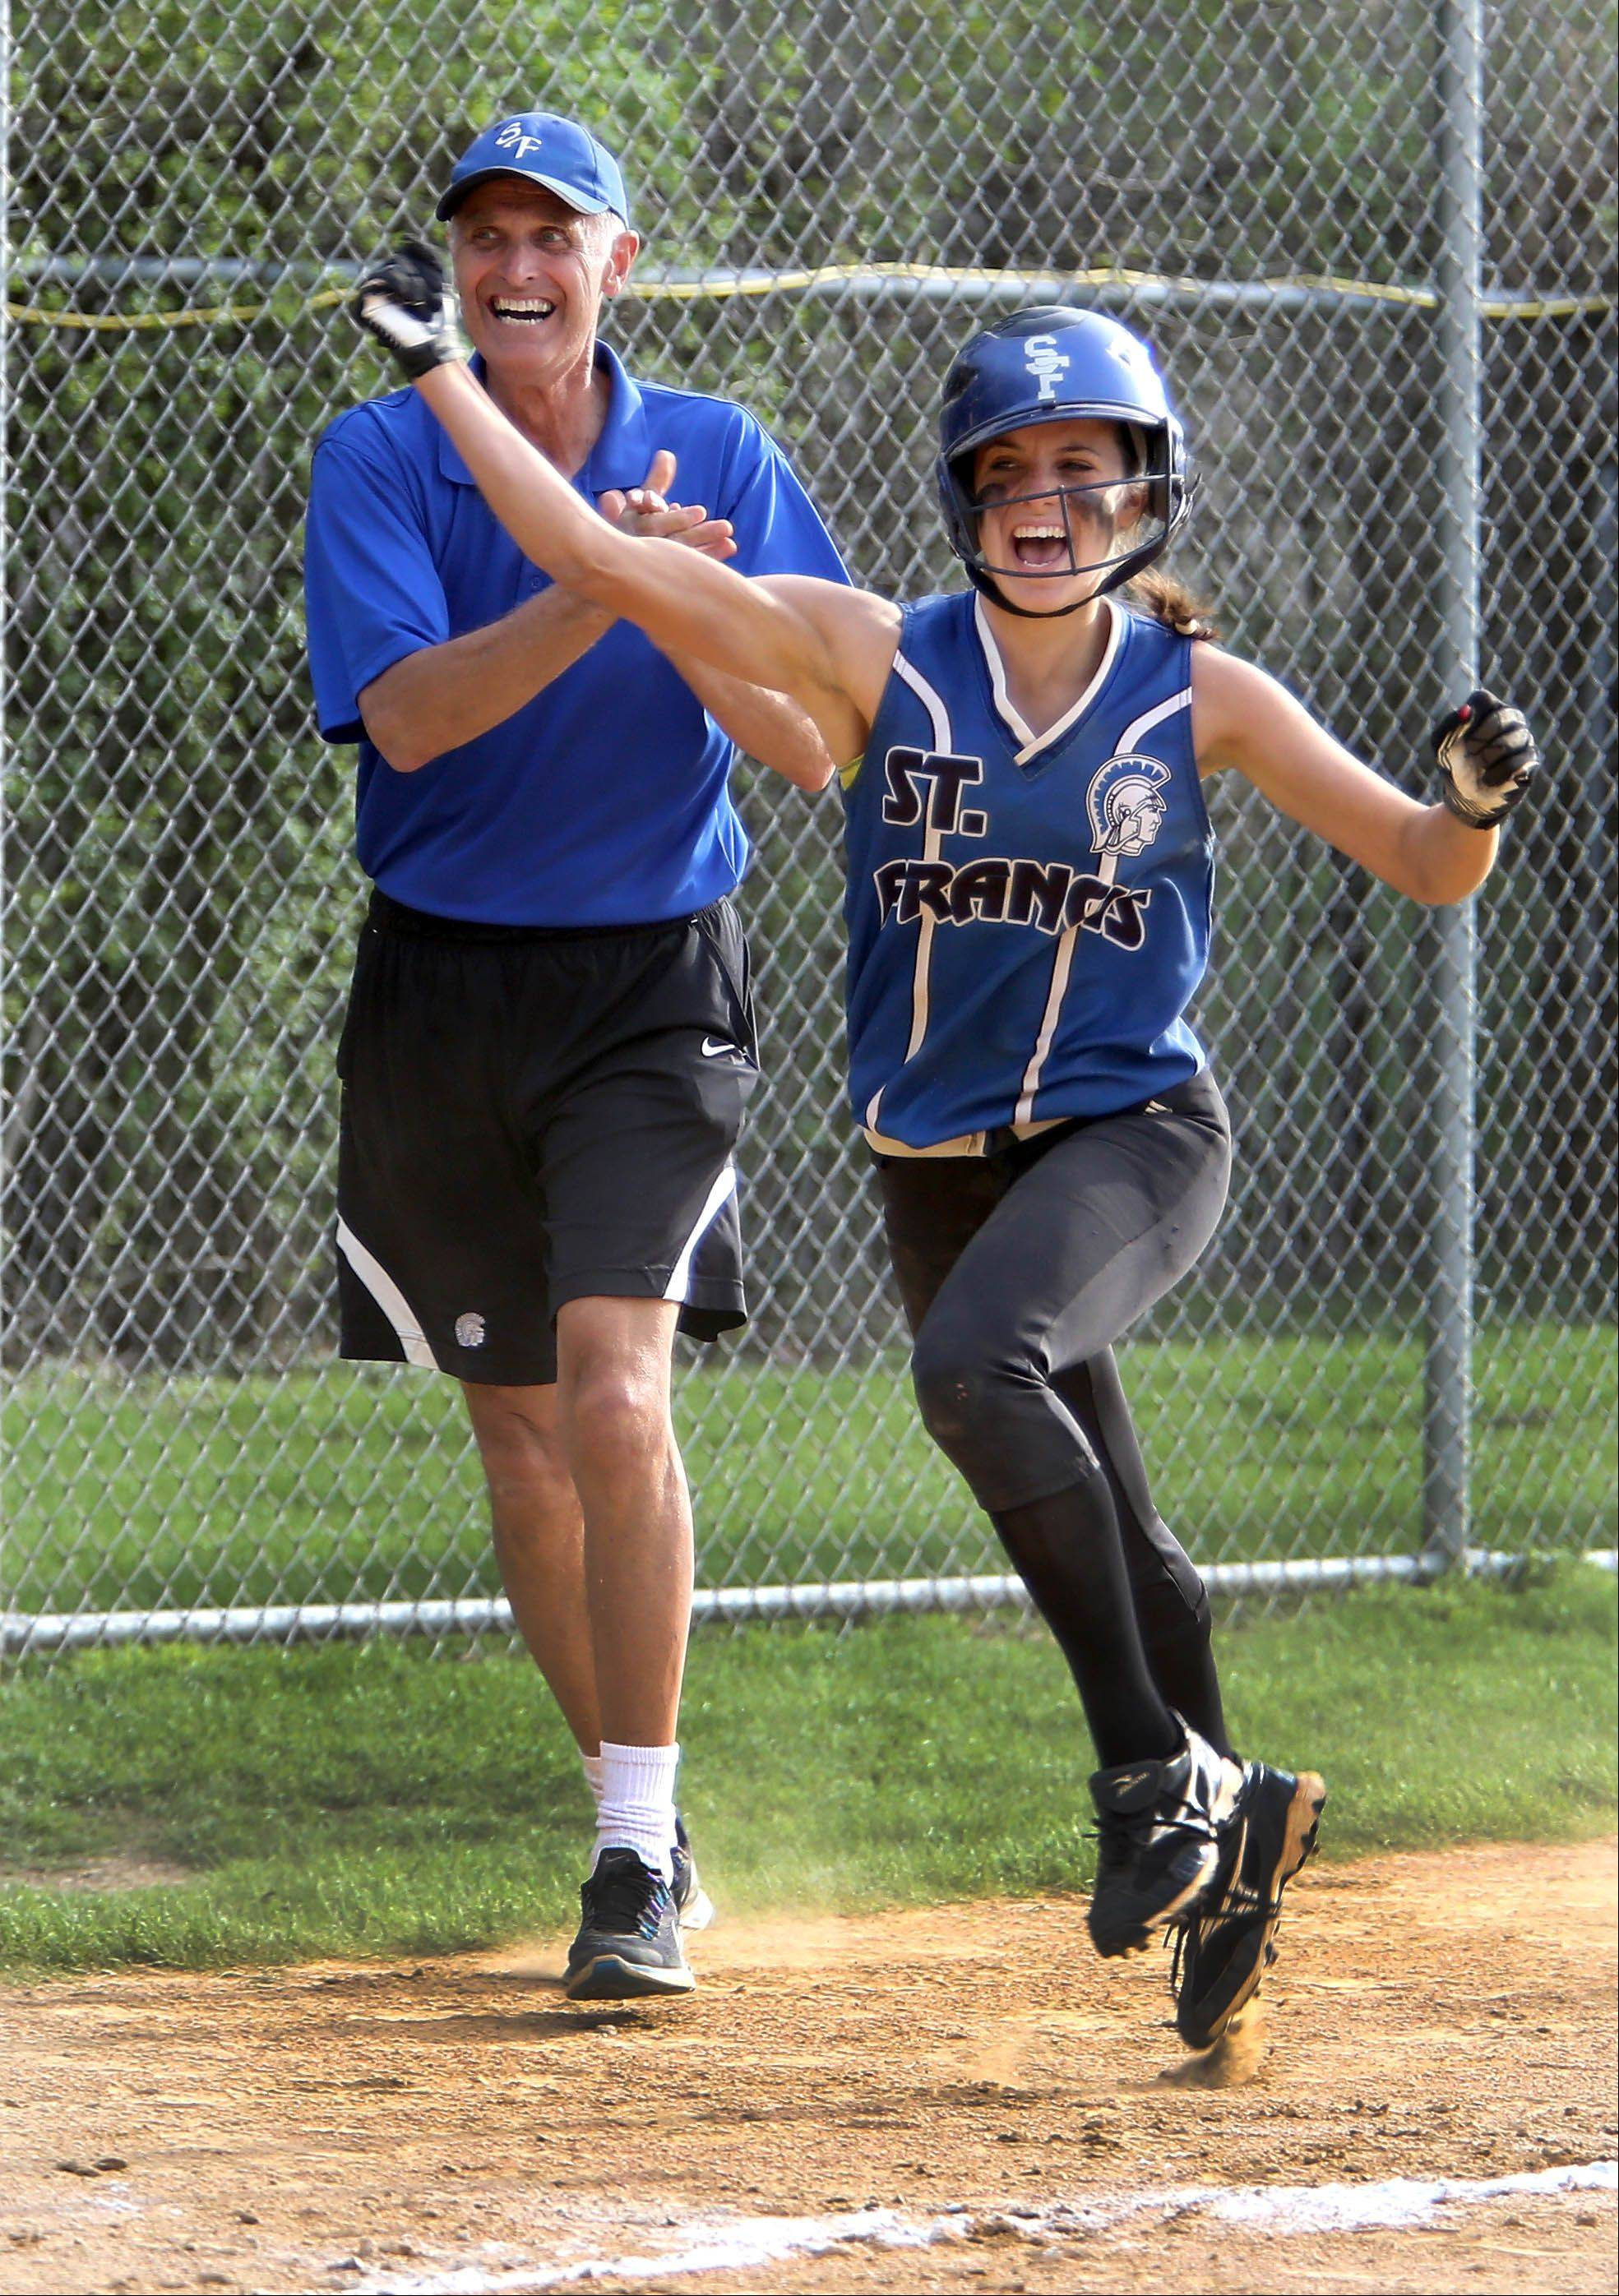 Head coach Ralph Remus is all smiles as Alyssa Fernandez comes home after hitting a game-winning two-run home run in the bottom of the 7th against Montini Catholic during girls softball on Monday in Wheaton.